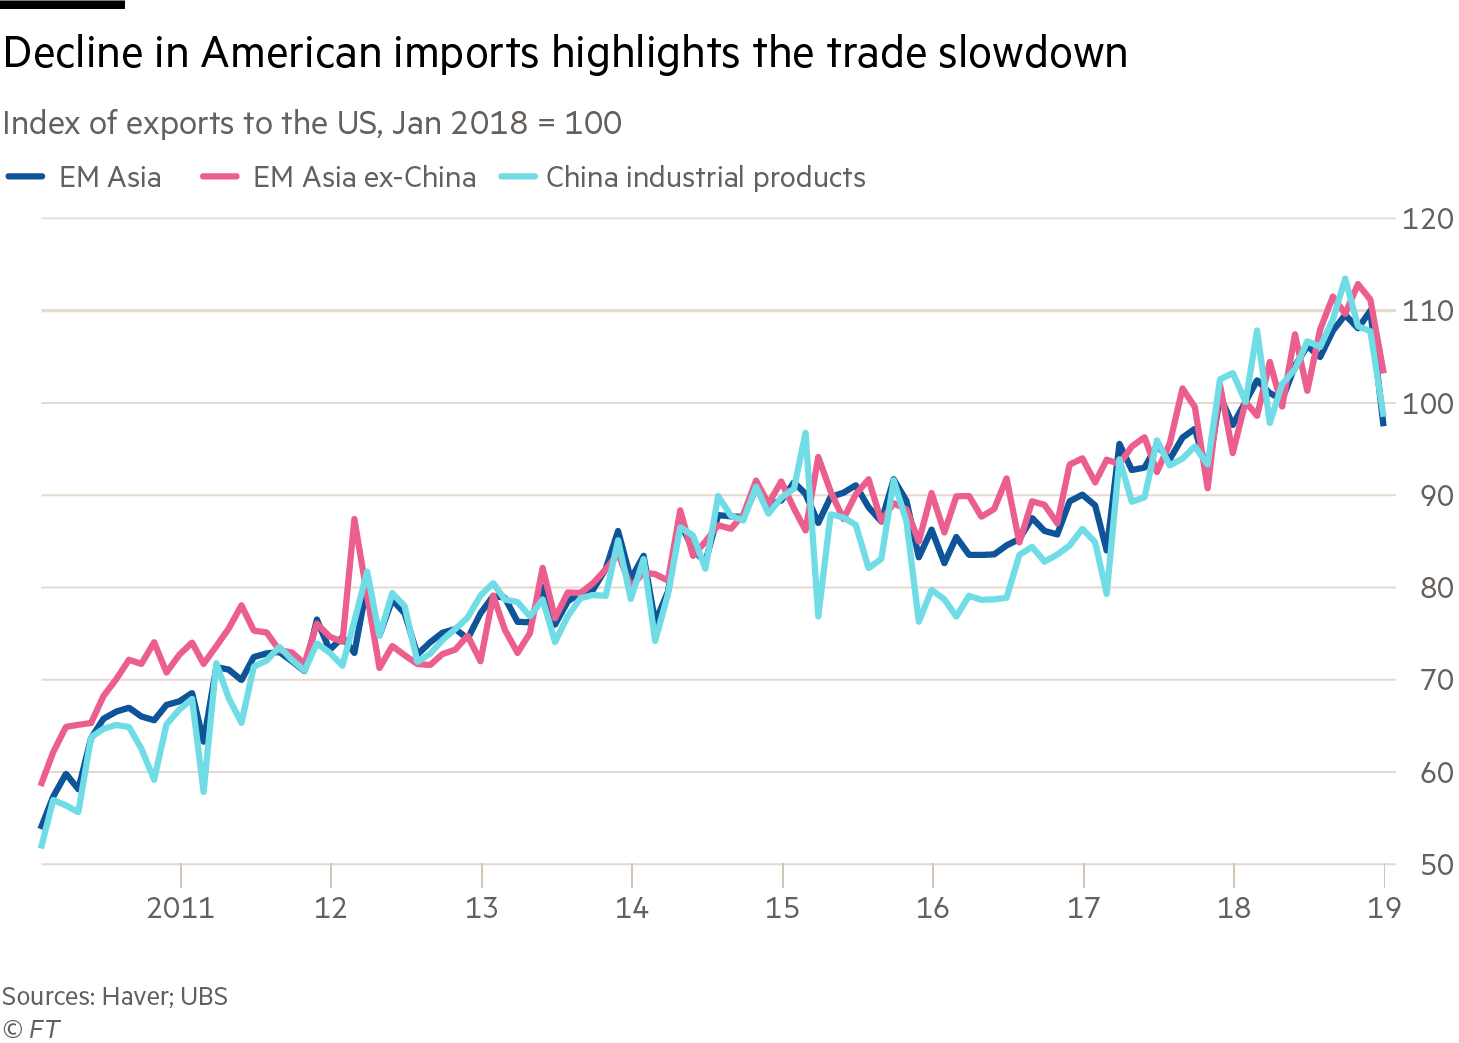 Imports index from 2010 to 2019. Three lines comparing Asia, Asia except for China and Chinas industrial sector. The general trend is up from just over 60 to just over 110 until December 2018 when there is a sharp decrease to just 100. Jan 2018 equals 100